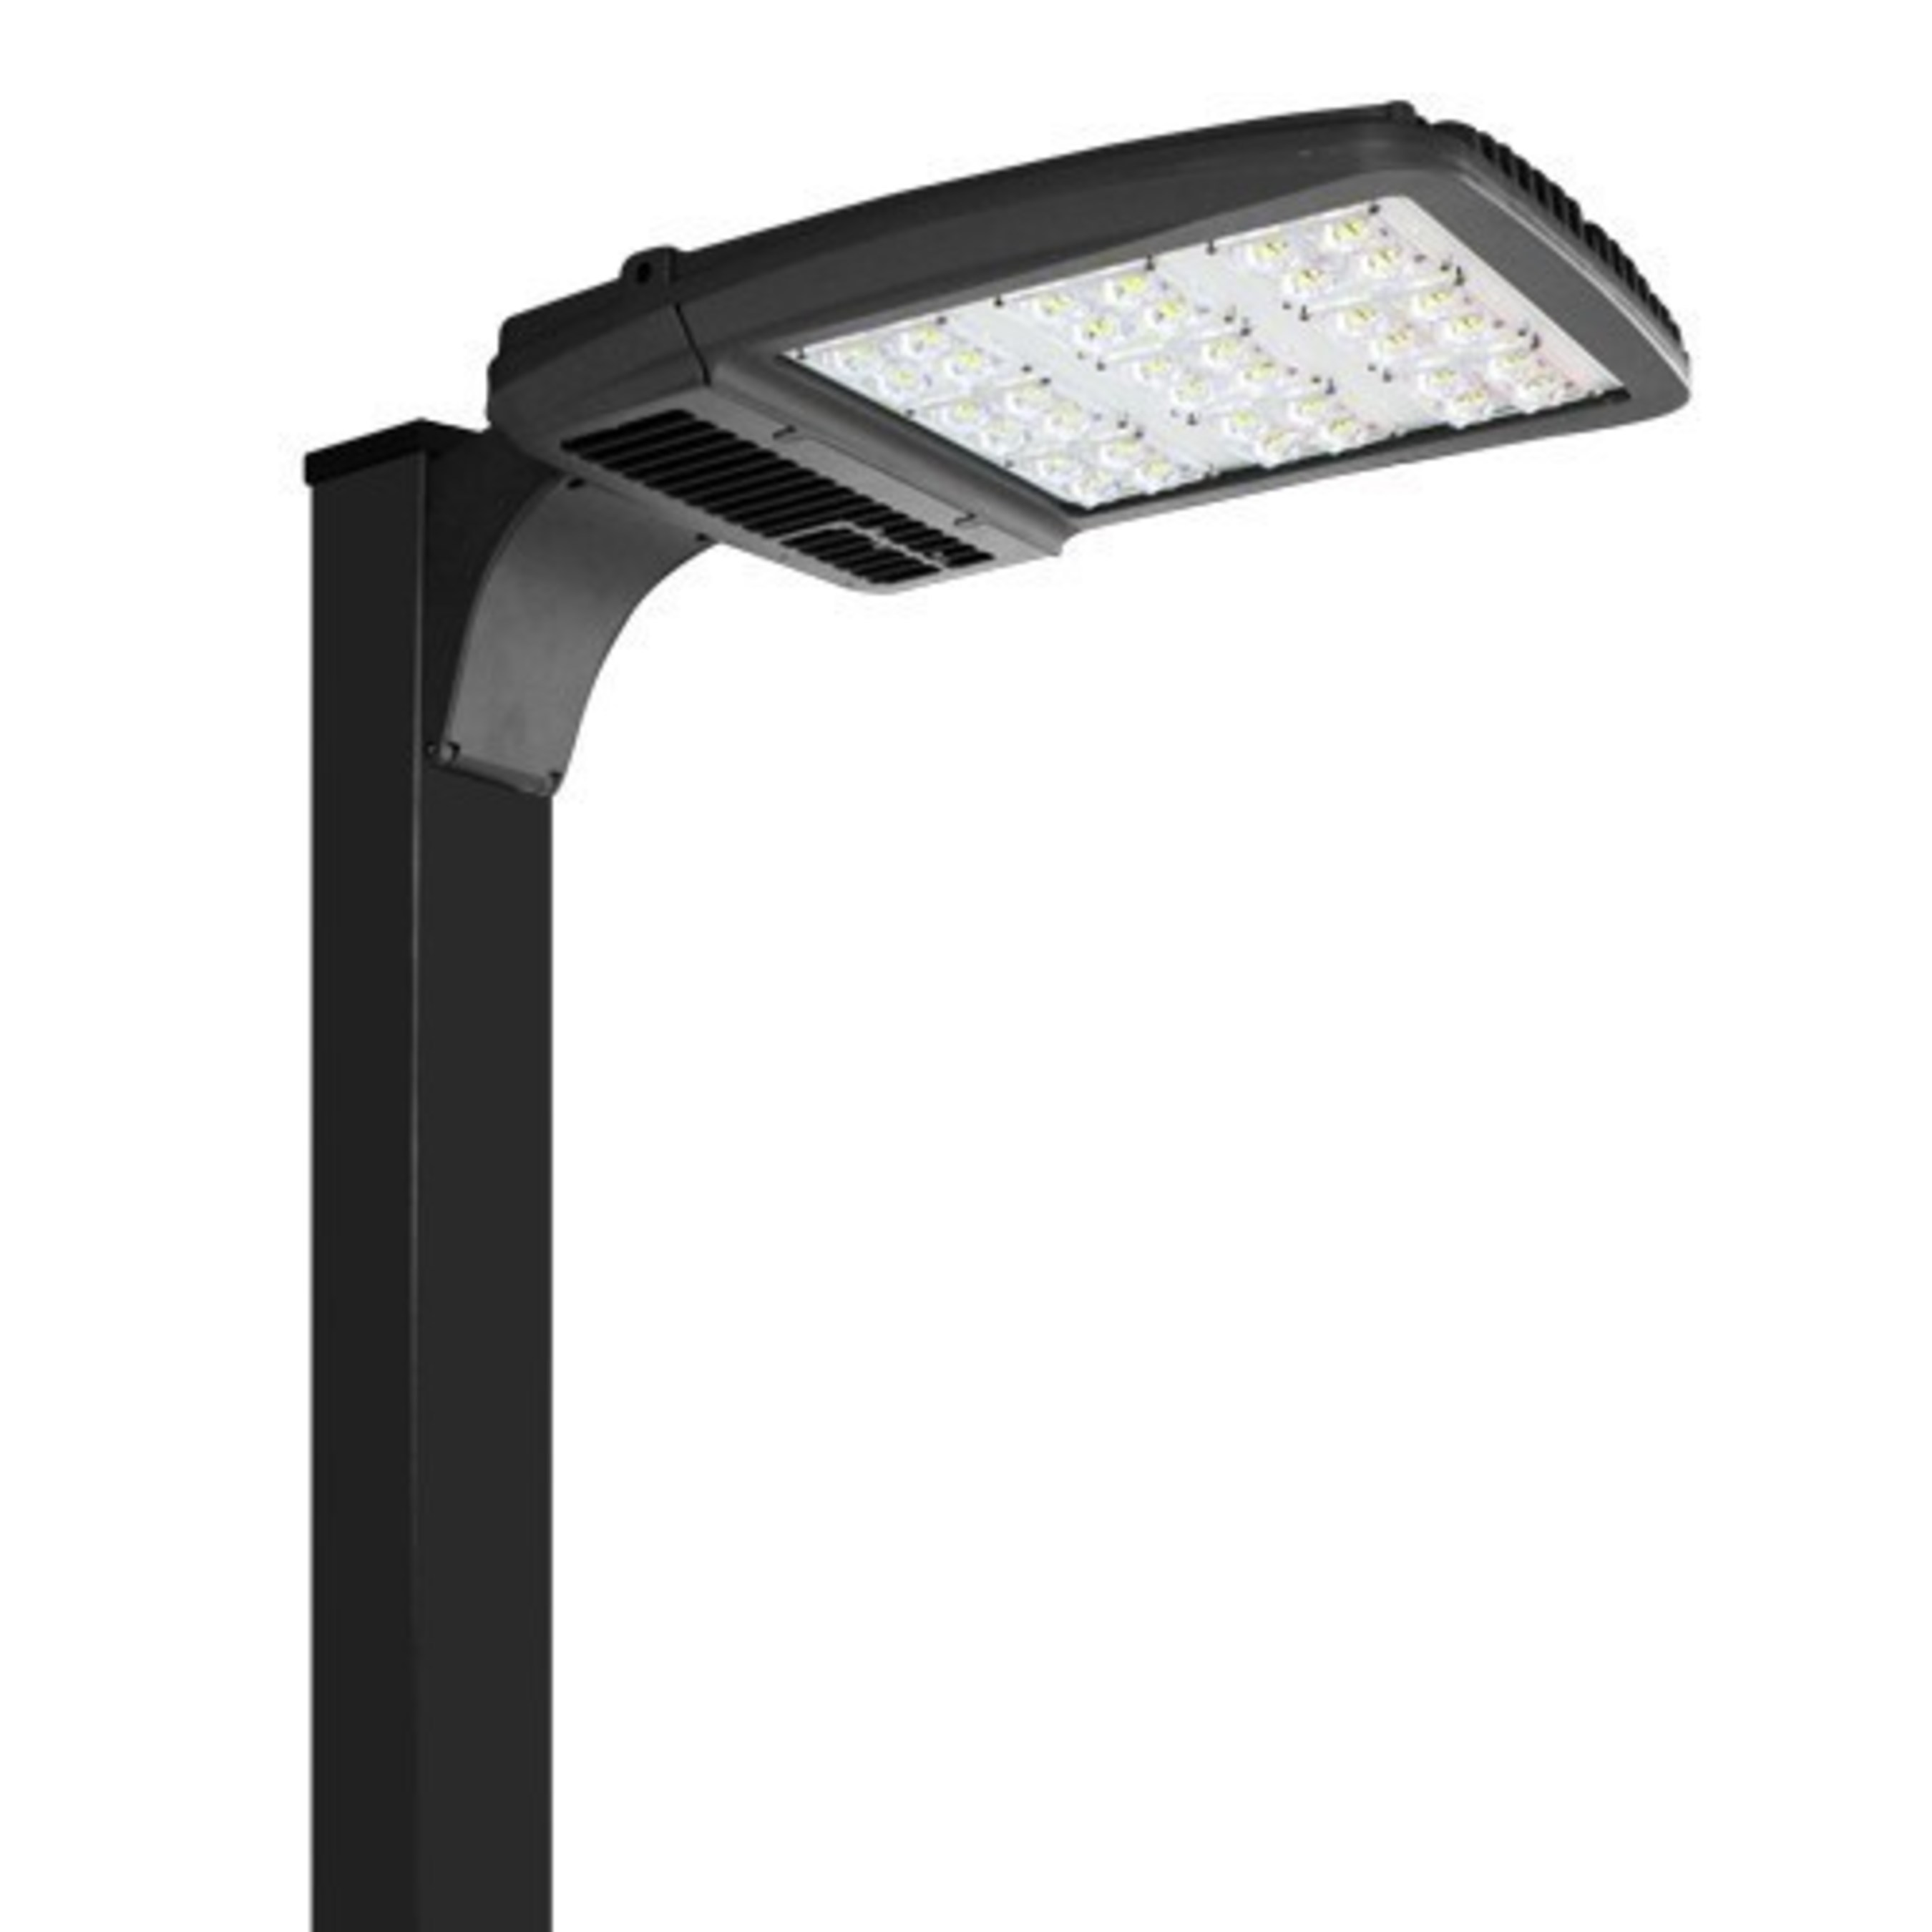 Deco Lighting Releases the Gladetino Next-Generation LED Area Lighting Solution